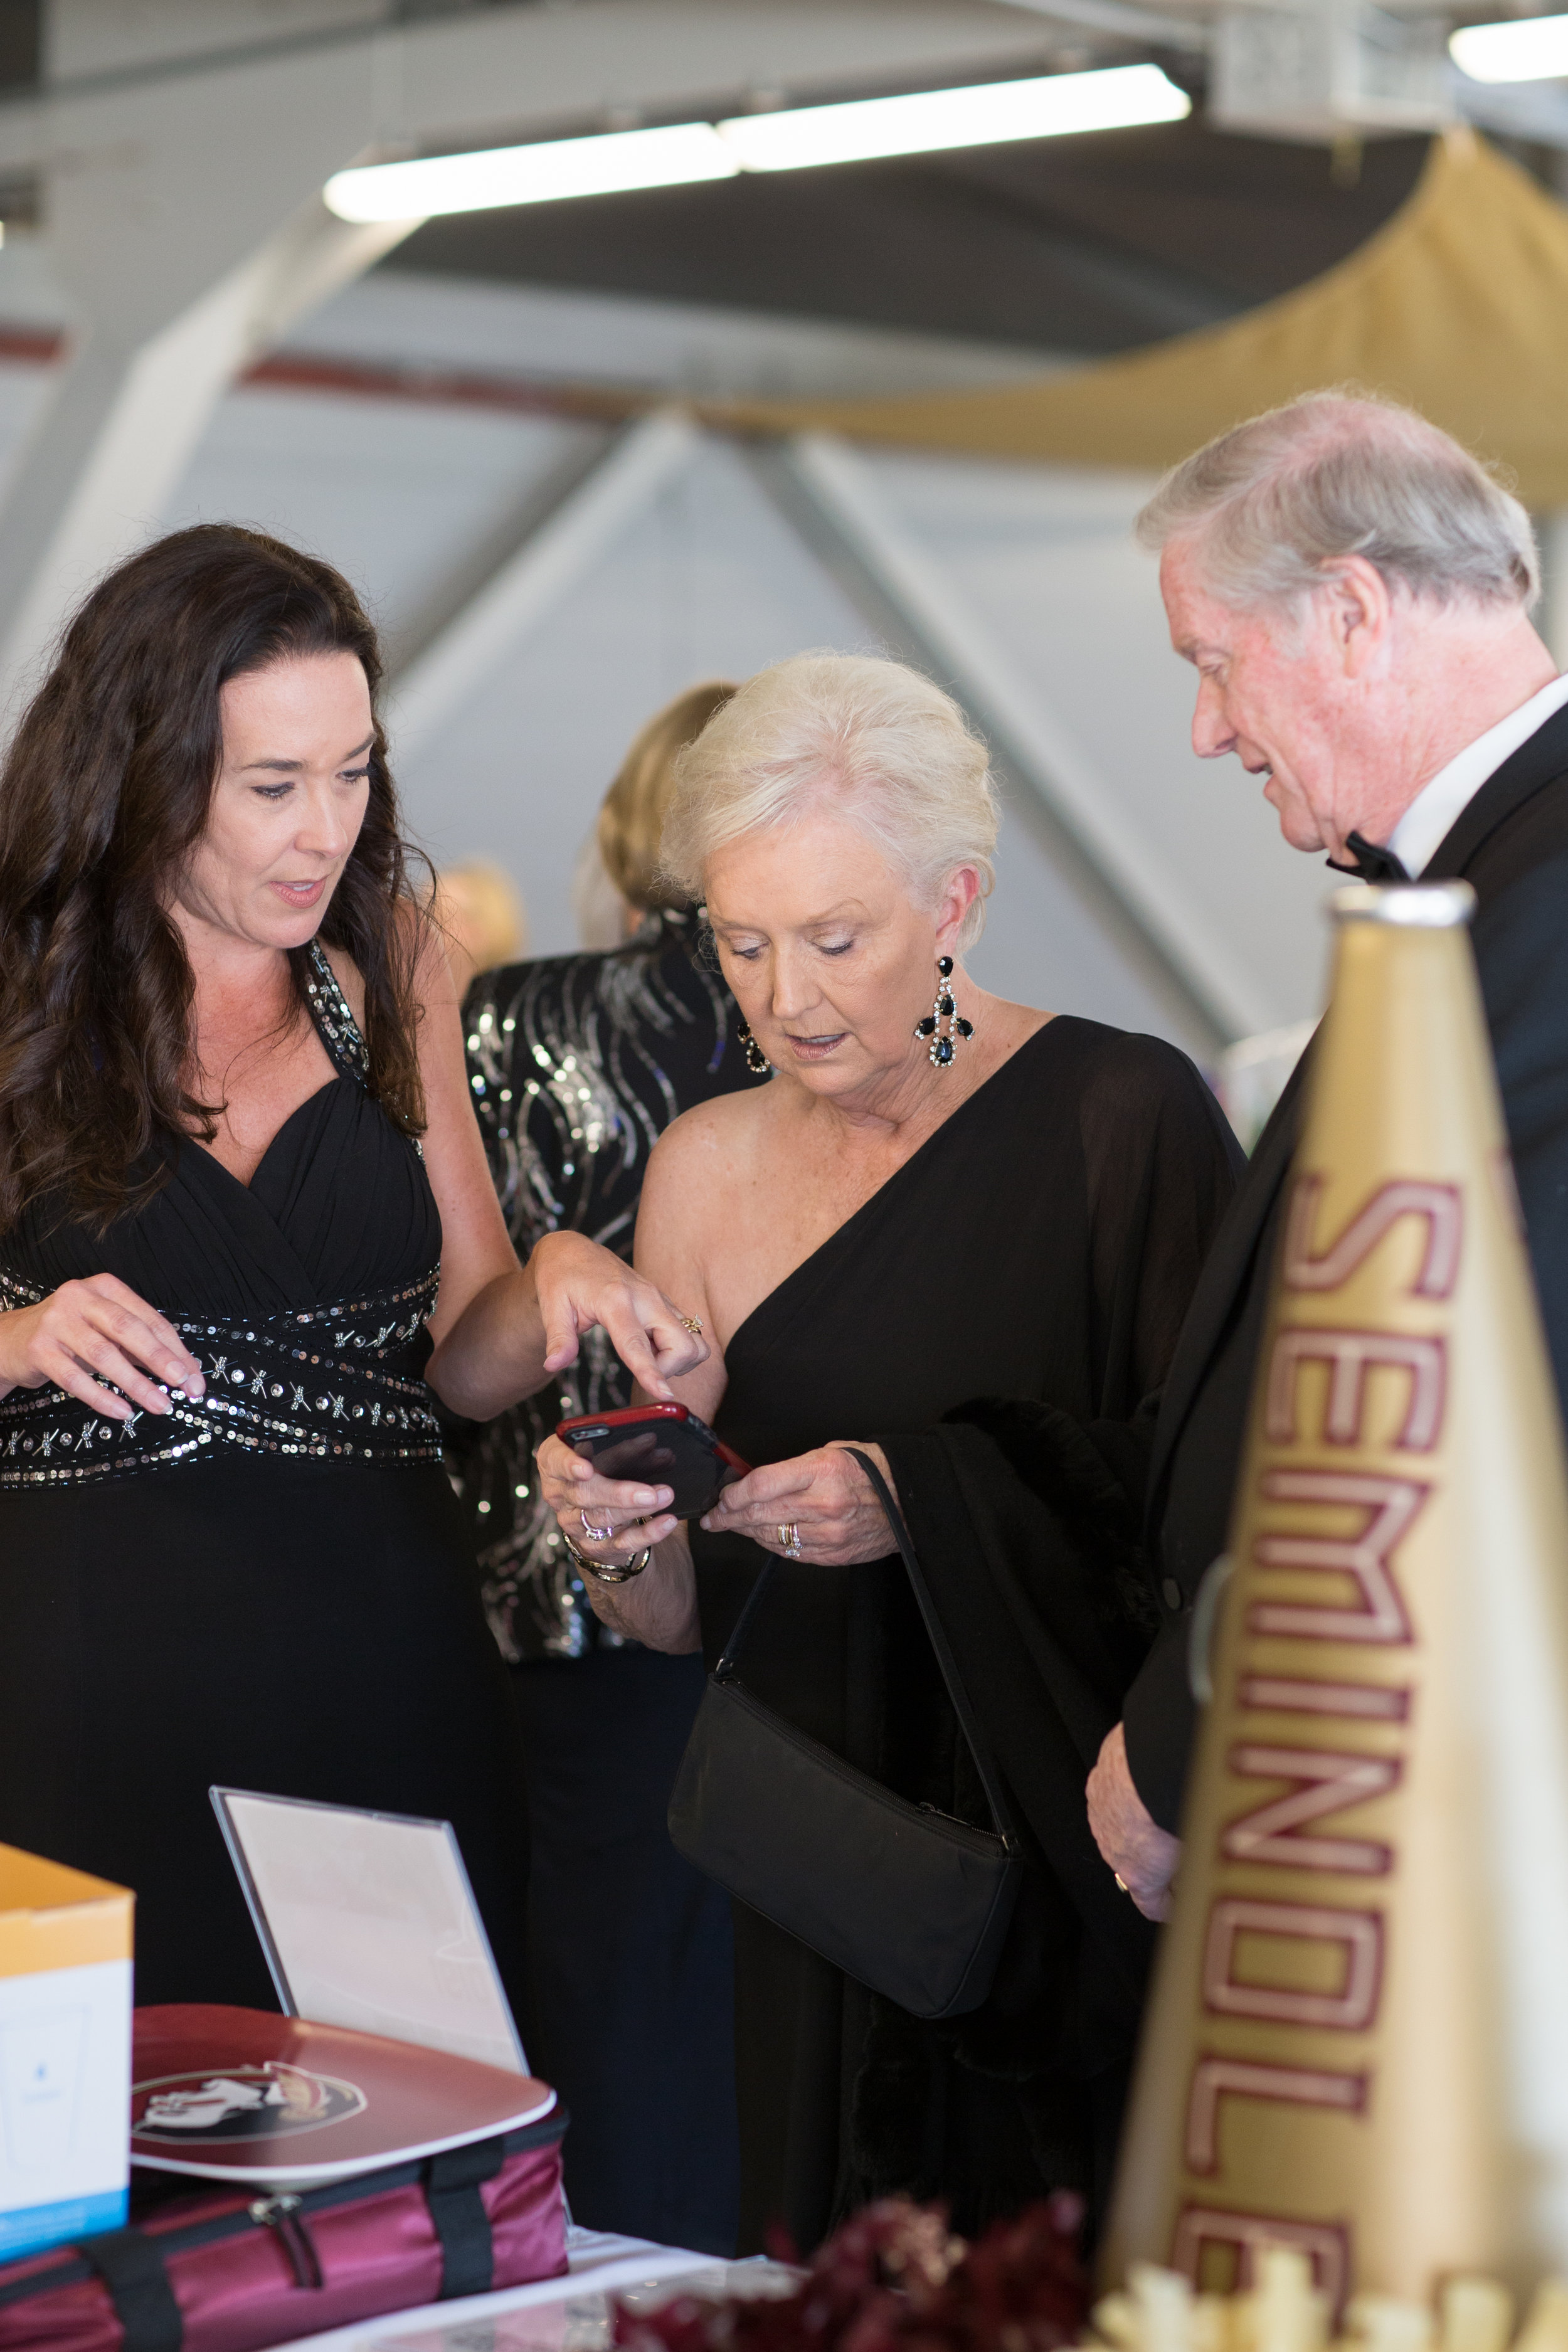 Volunteer Kimberly Adcock assists President and Mrs. Thrasher with online silent auction bidding